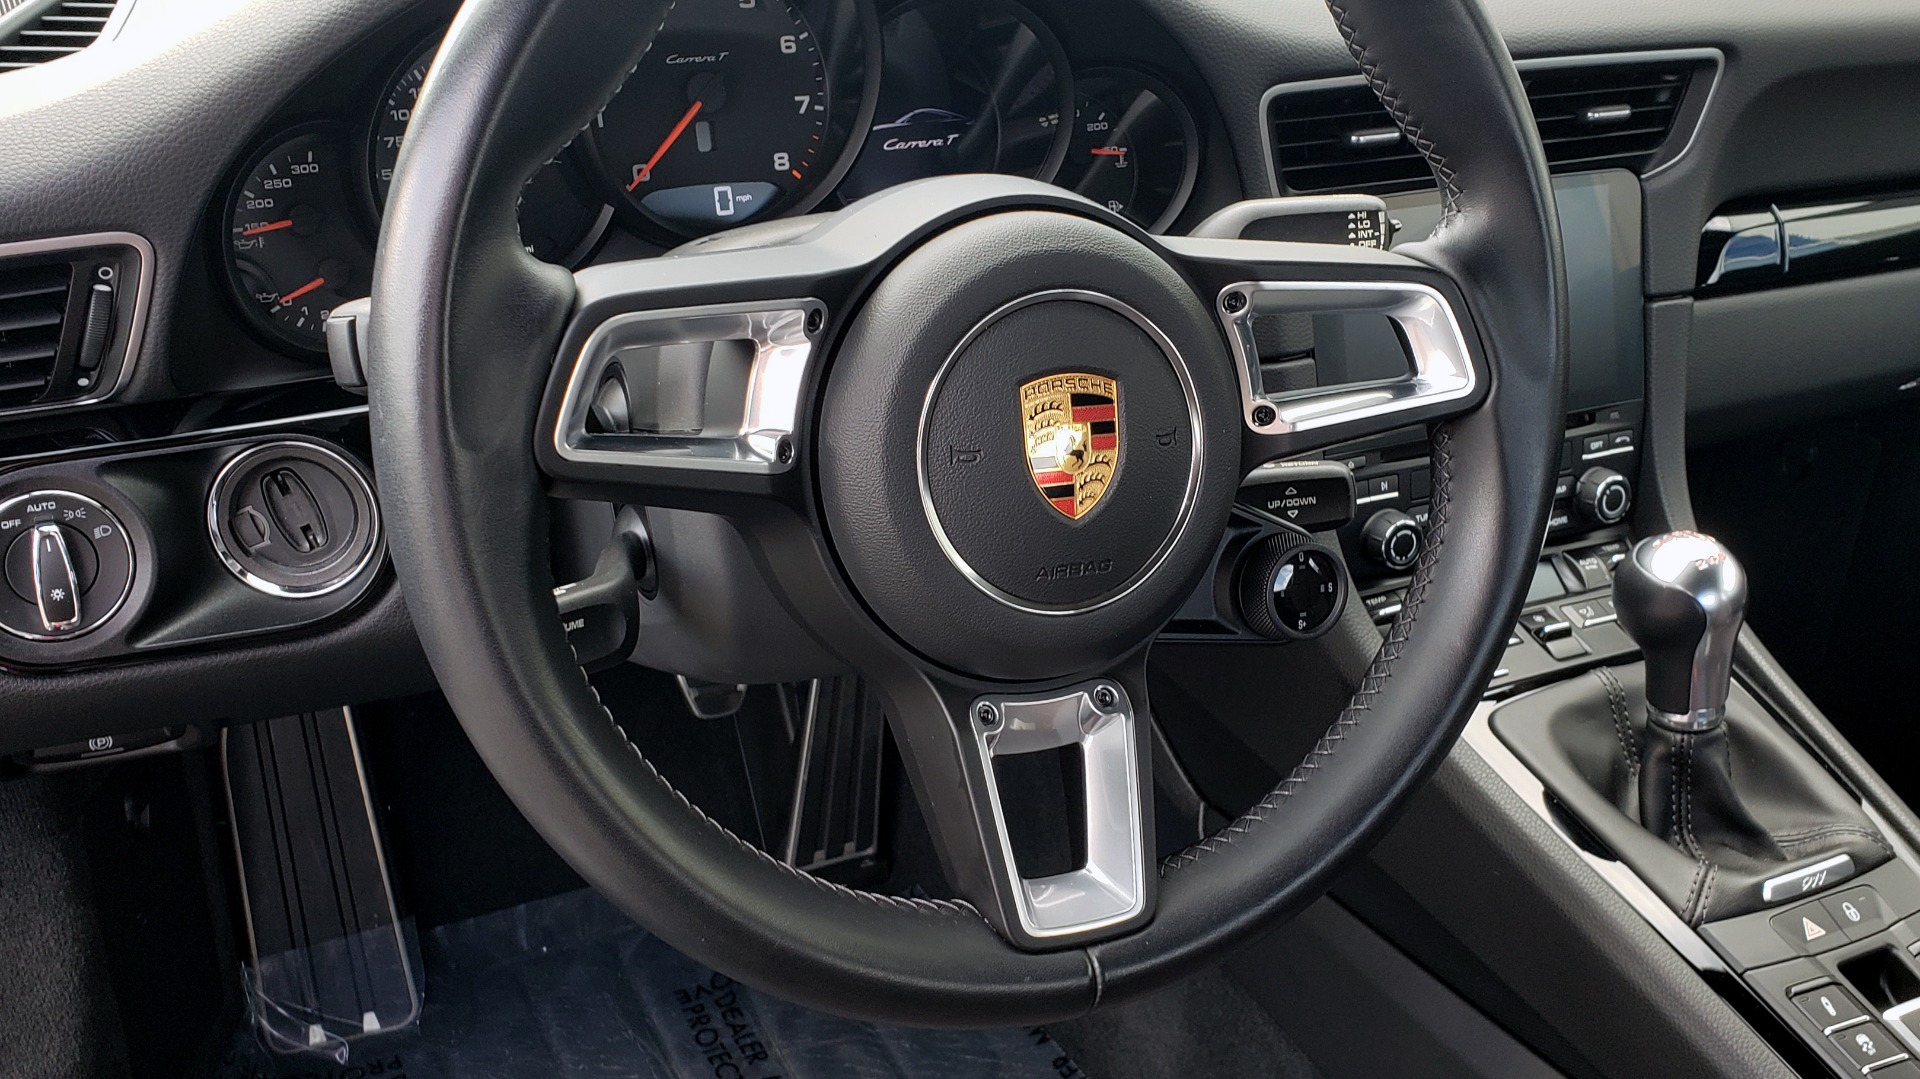 Used 2019 Porsche 911 CARRERA T / 3.0L H6 / MANUAL / PREMIUM / NAV / BOSE / SUNROOF / REARVIEW for sale $117,000 at Formula Imports in Charlotte NC 28227 21